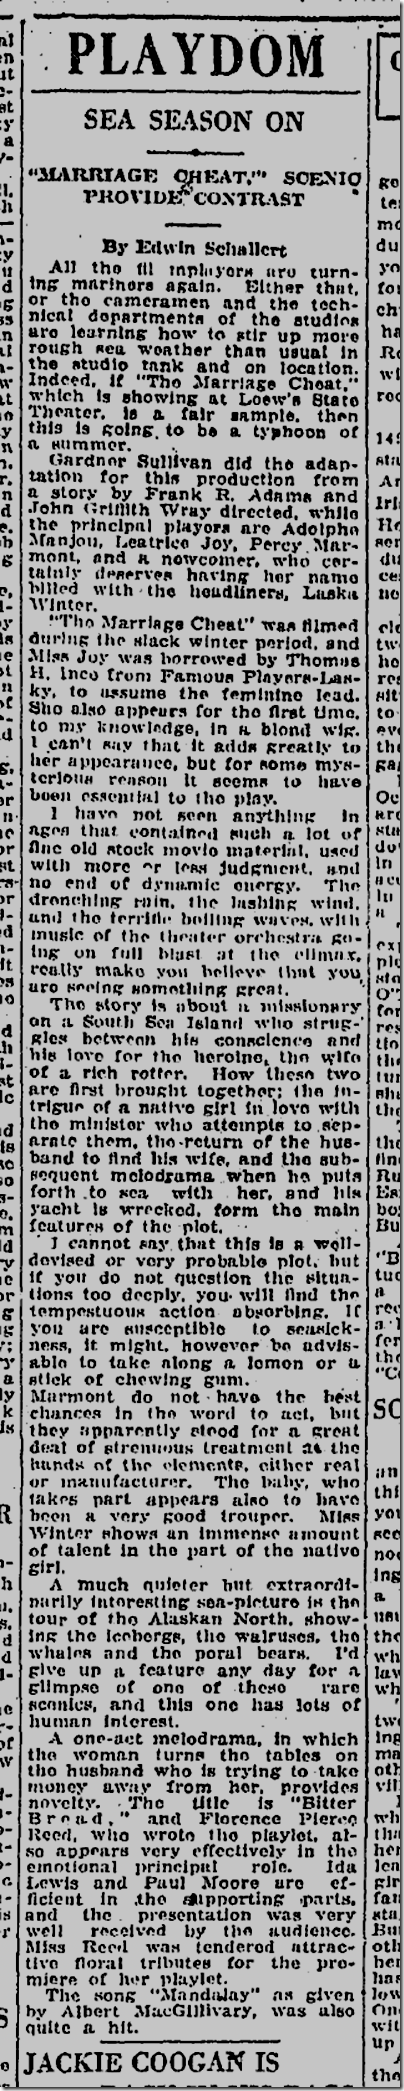 May 12, 1924, Marriage Cheat